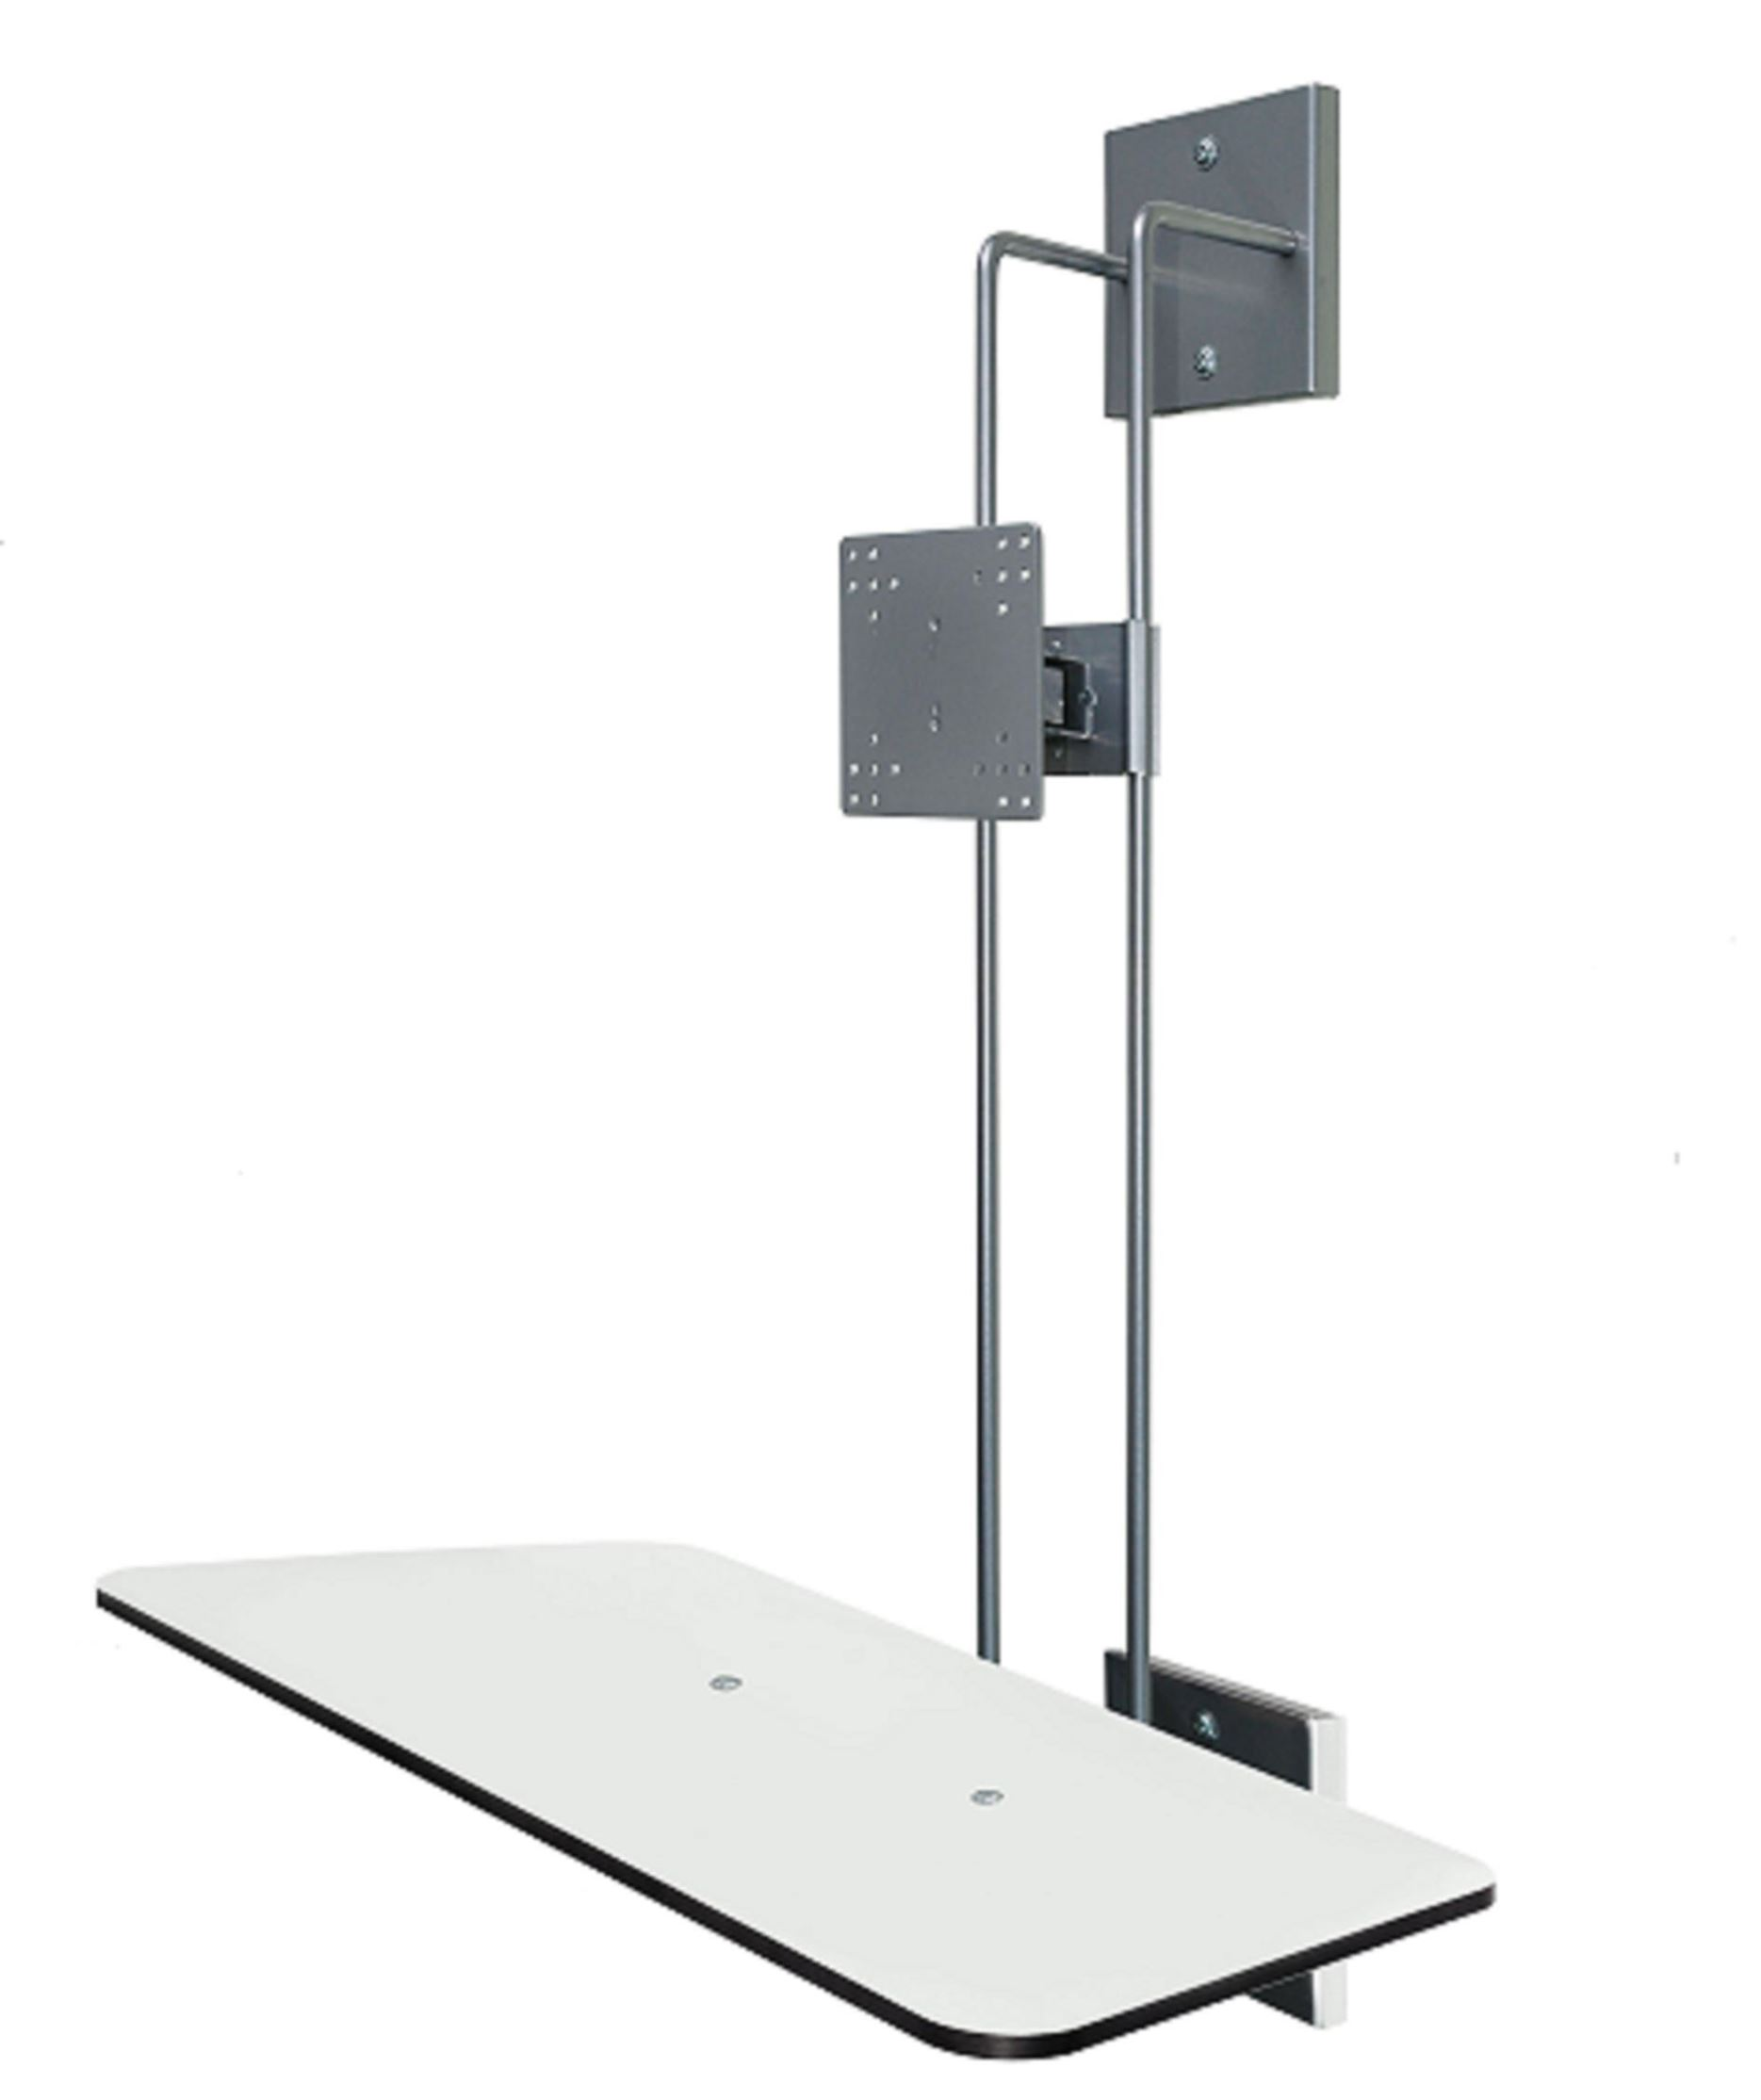 "R-Go Hang Out Wall Mount, with display for mouse and keyboard, up to 27"", Max weight 10kg, adjustable, silver - 4"